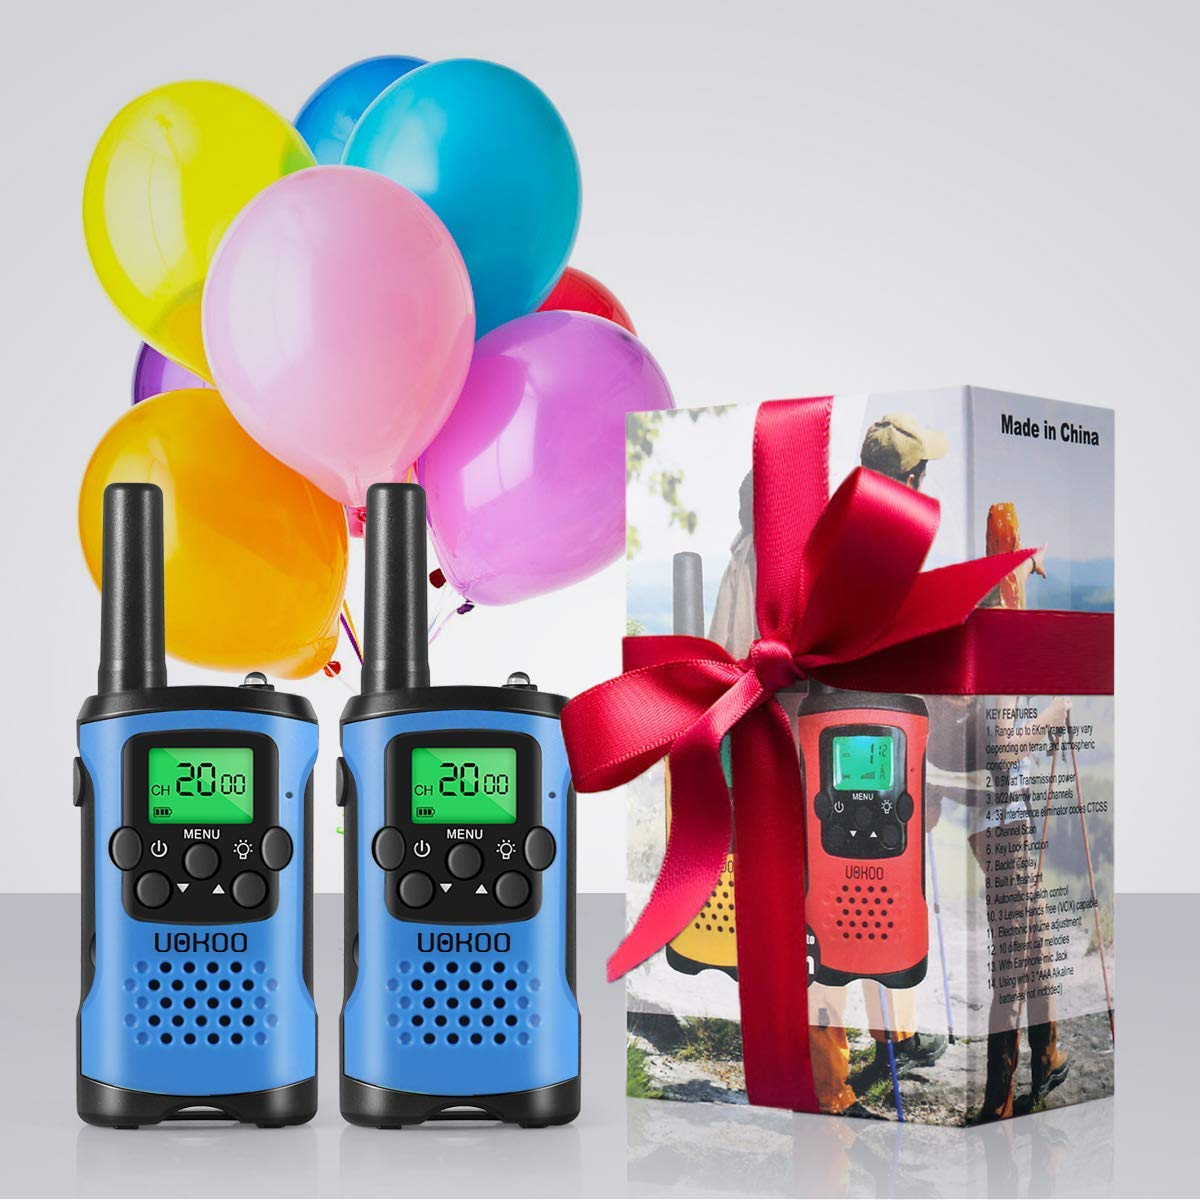 Tintec Walkie Talkies